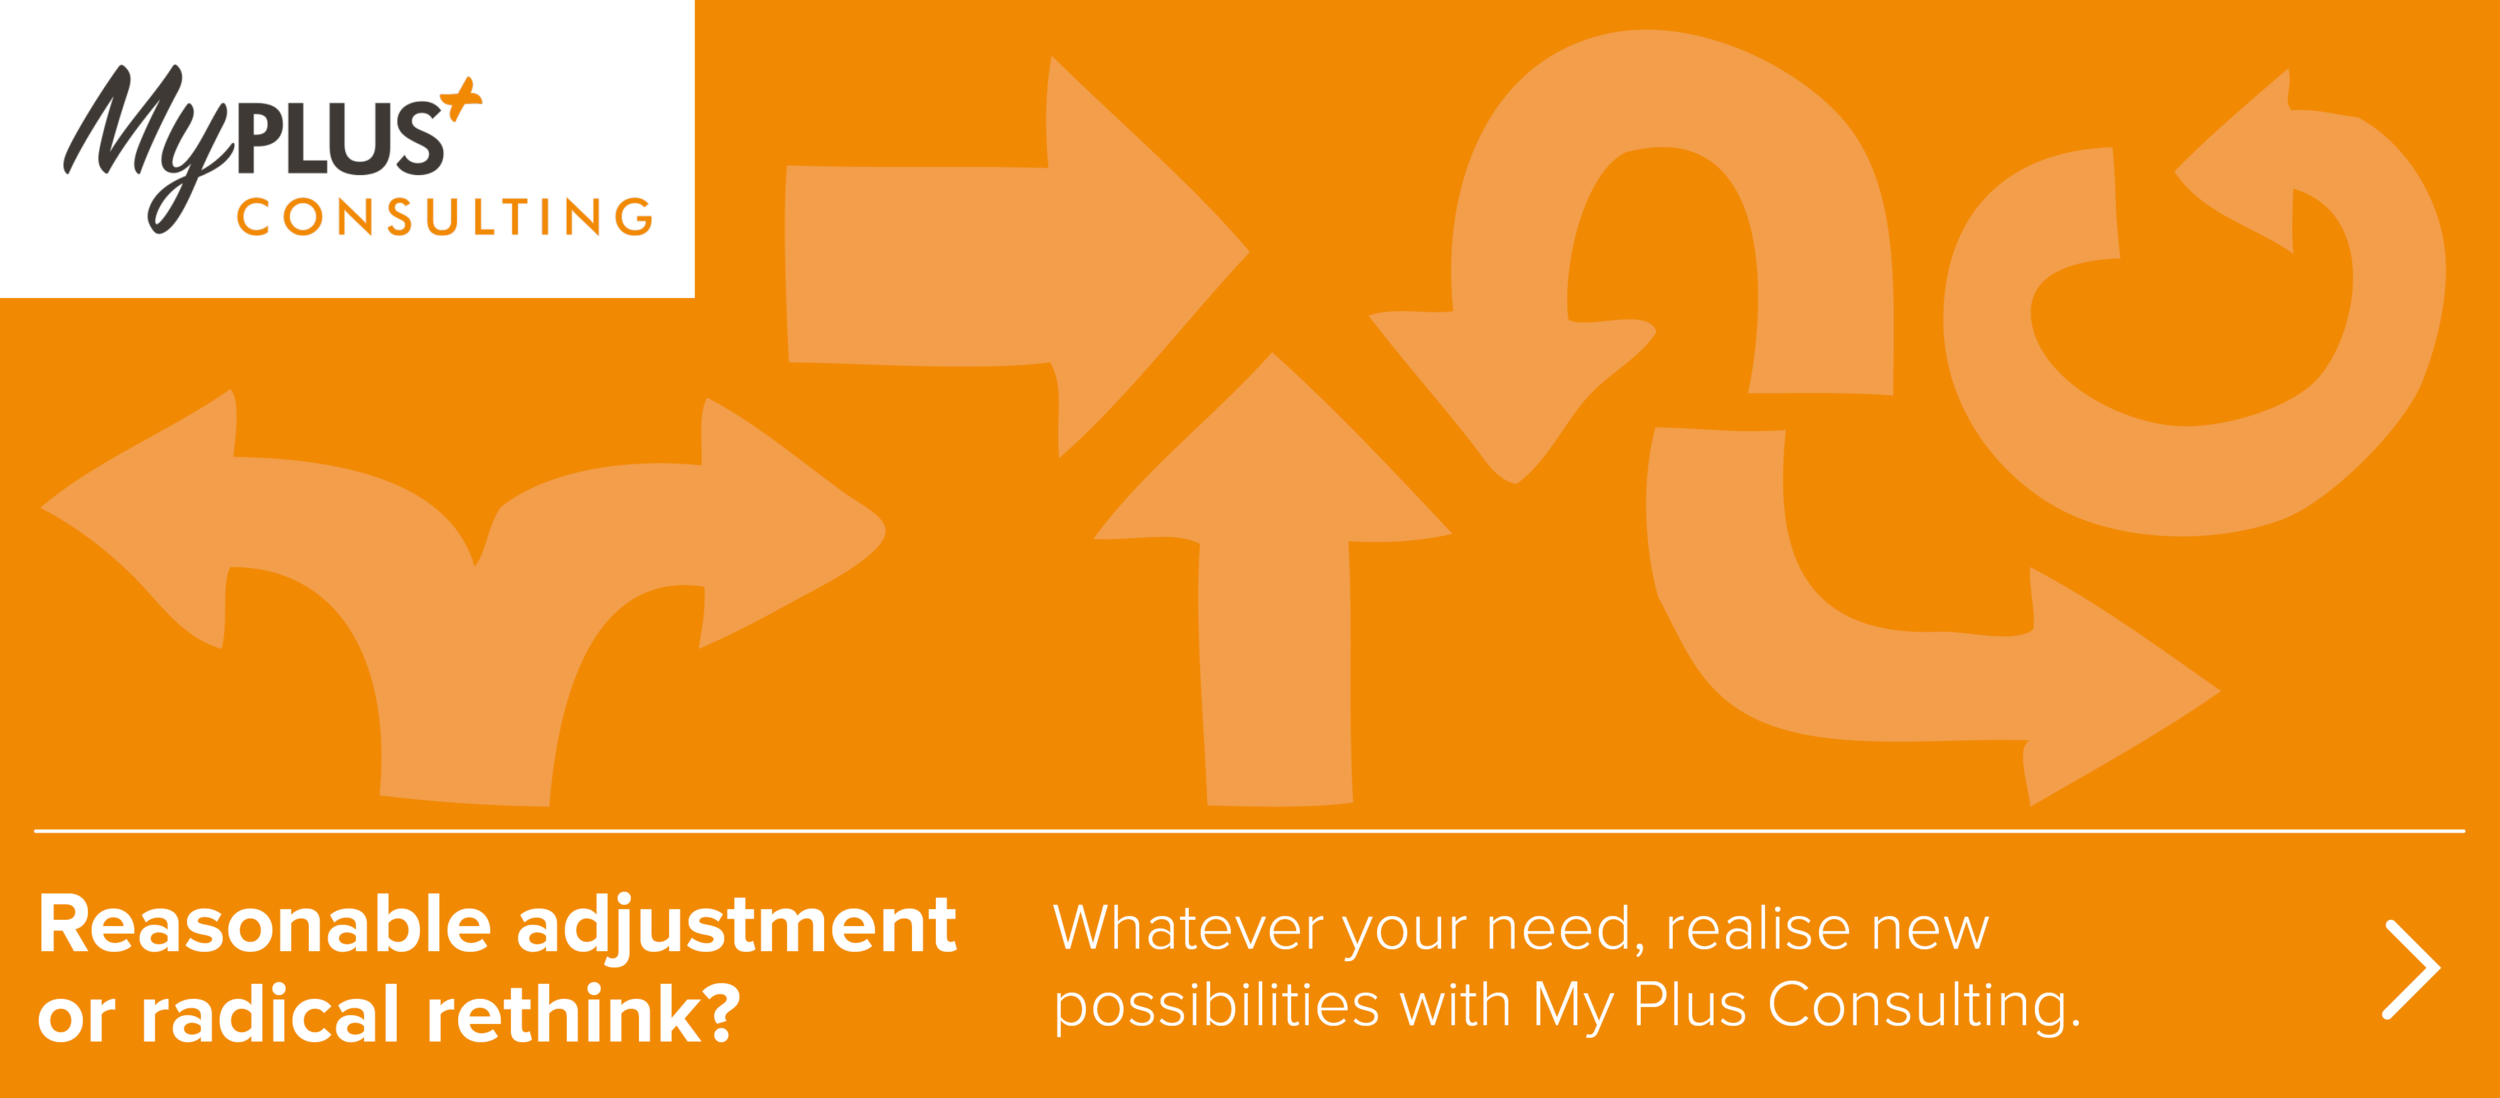 Whatever your need, realise new possibilities with My Plus Consulting.